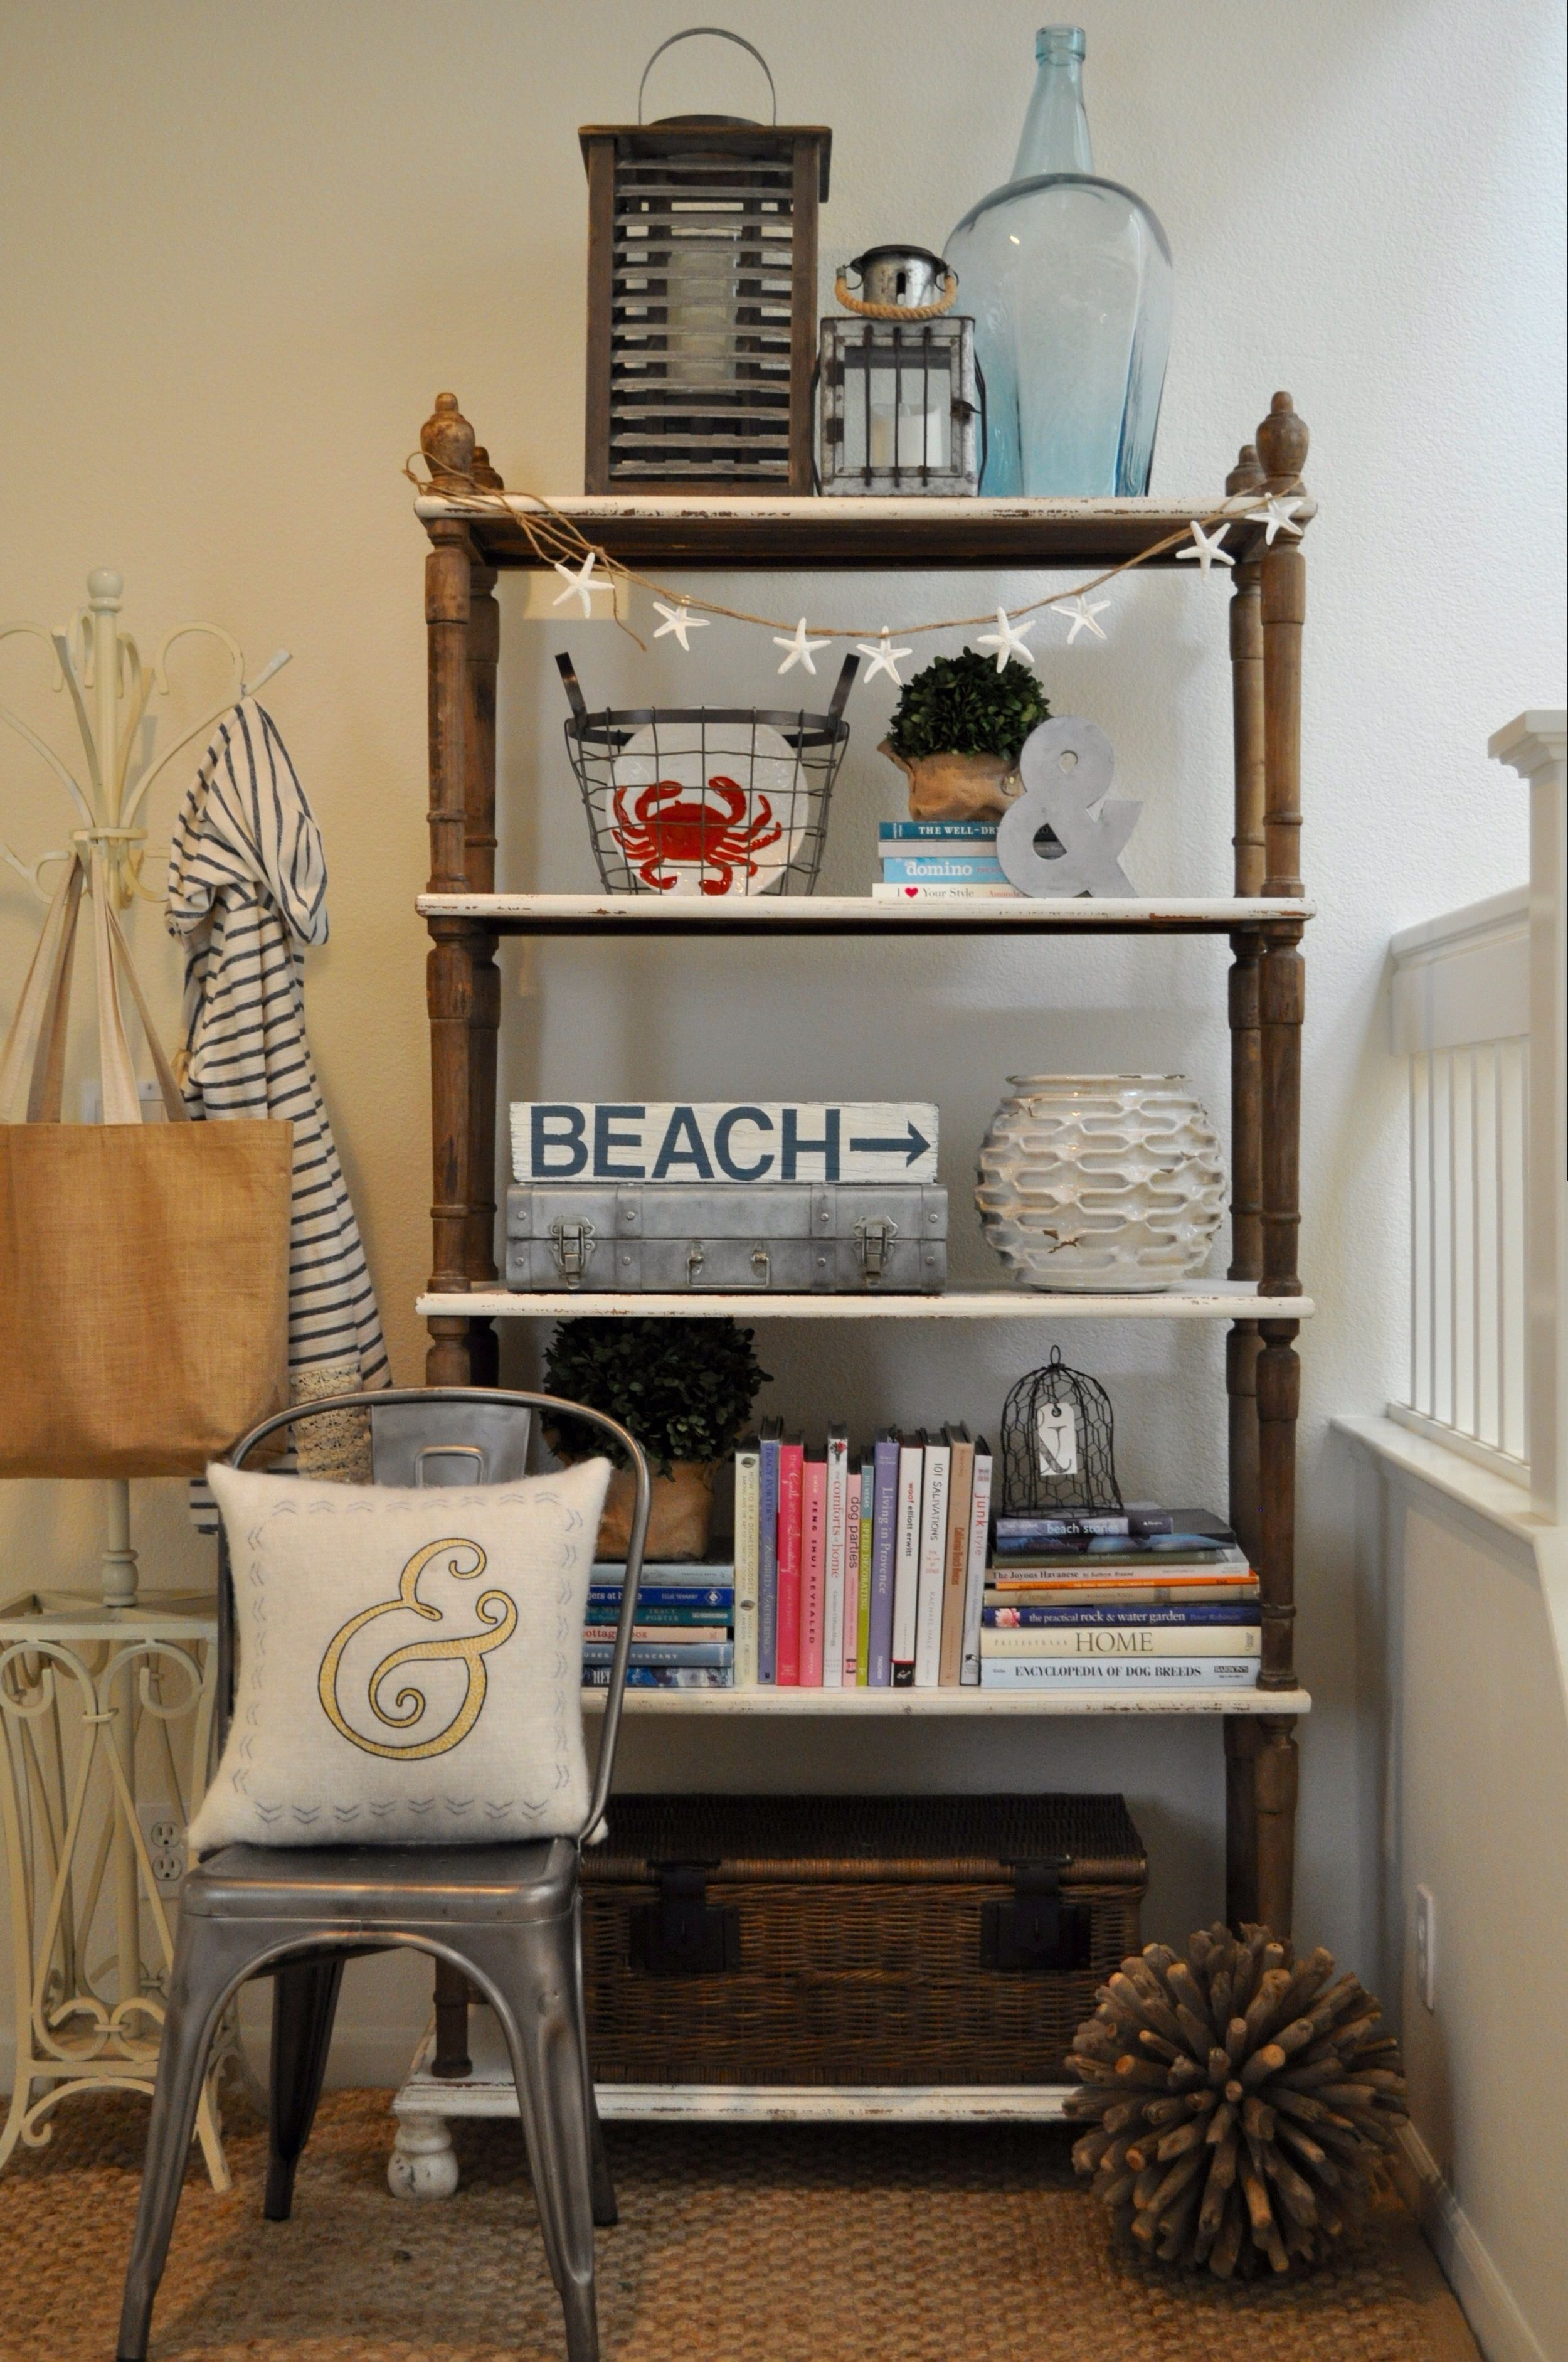 This Homegoods Bookcase Is The Start Of An Organized